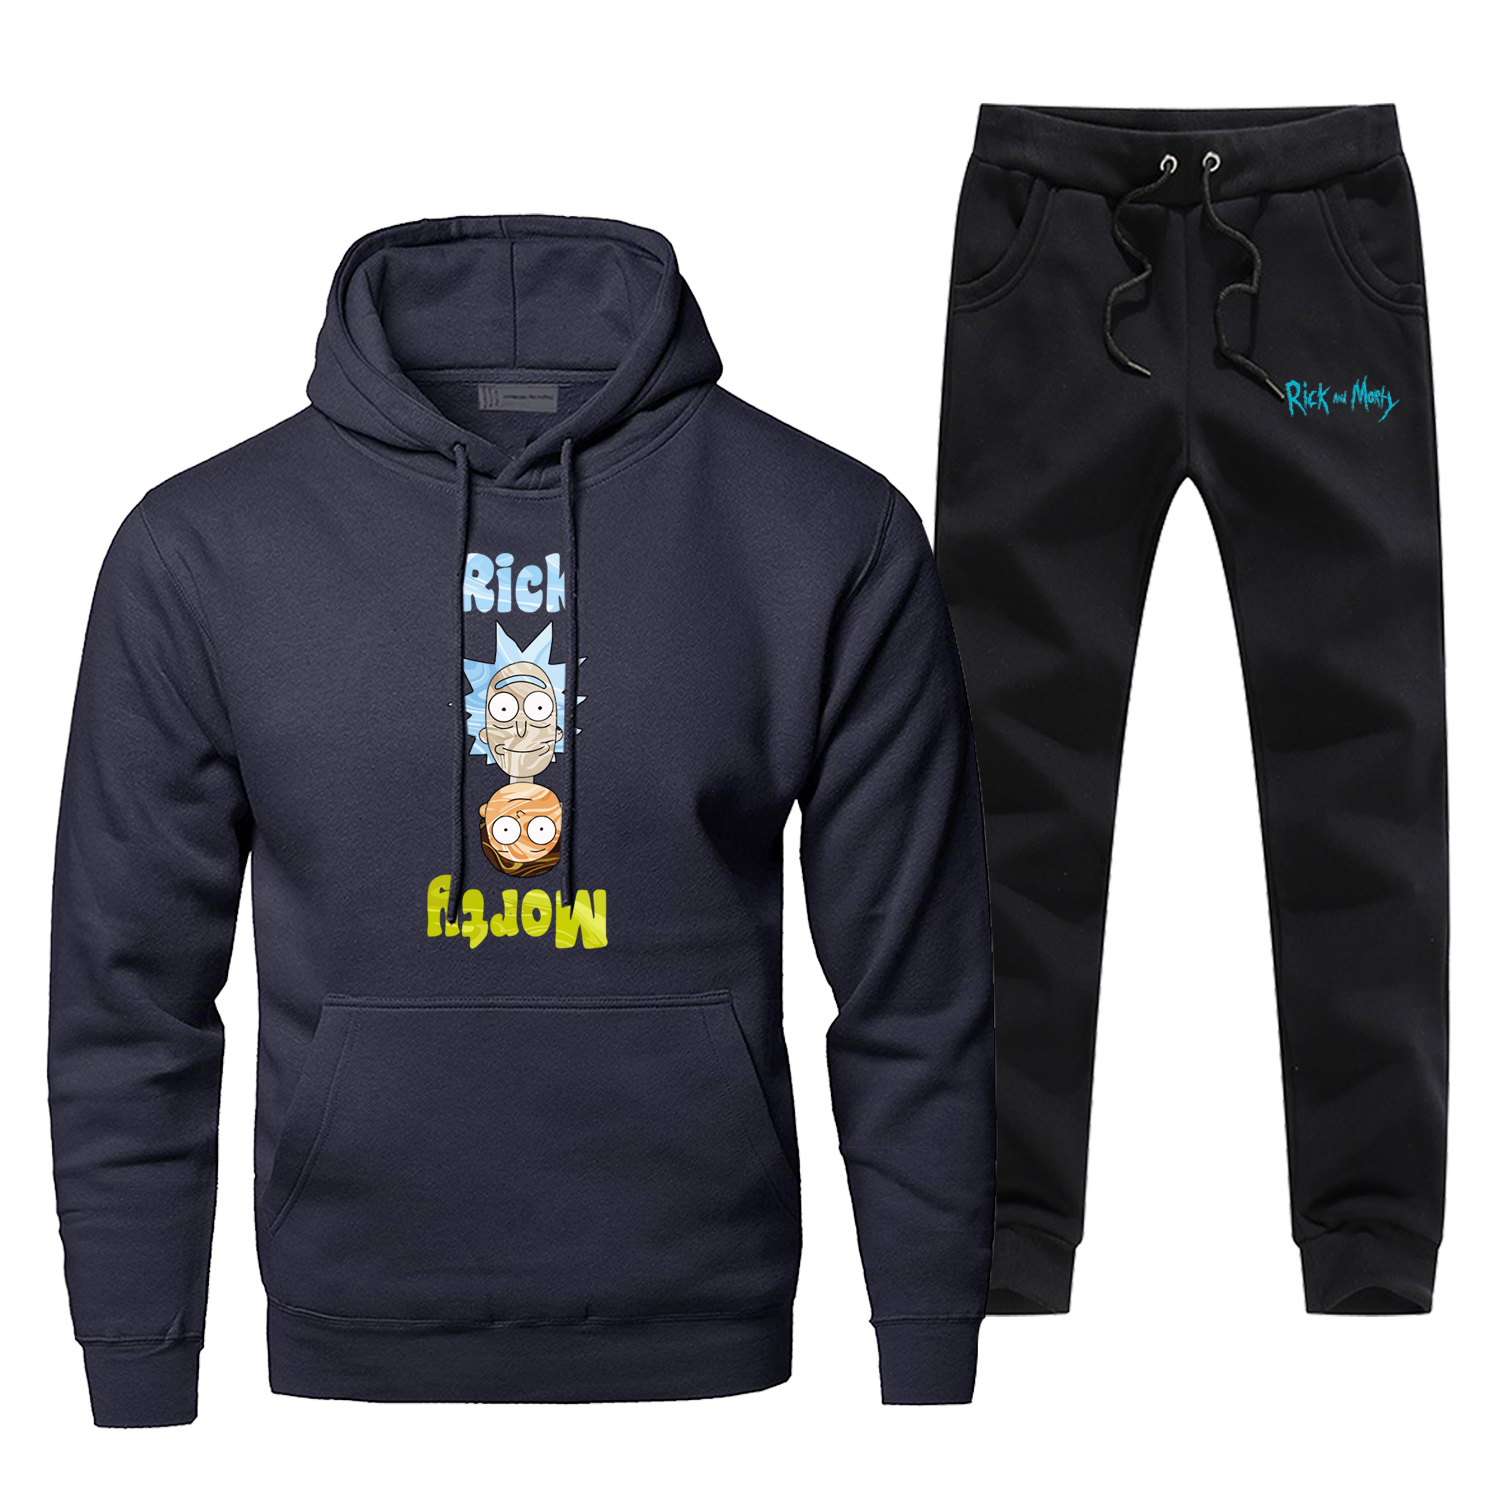 Funny Rick And Morty Upside Down Hoodies+pants 2pcs Sets Men Fashion Sweatshirt Hip Hop Sportswear Fleece Streetwear Sweatpants